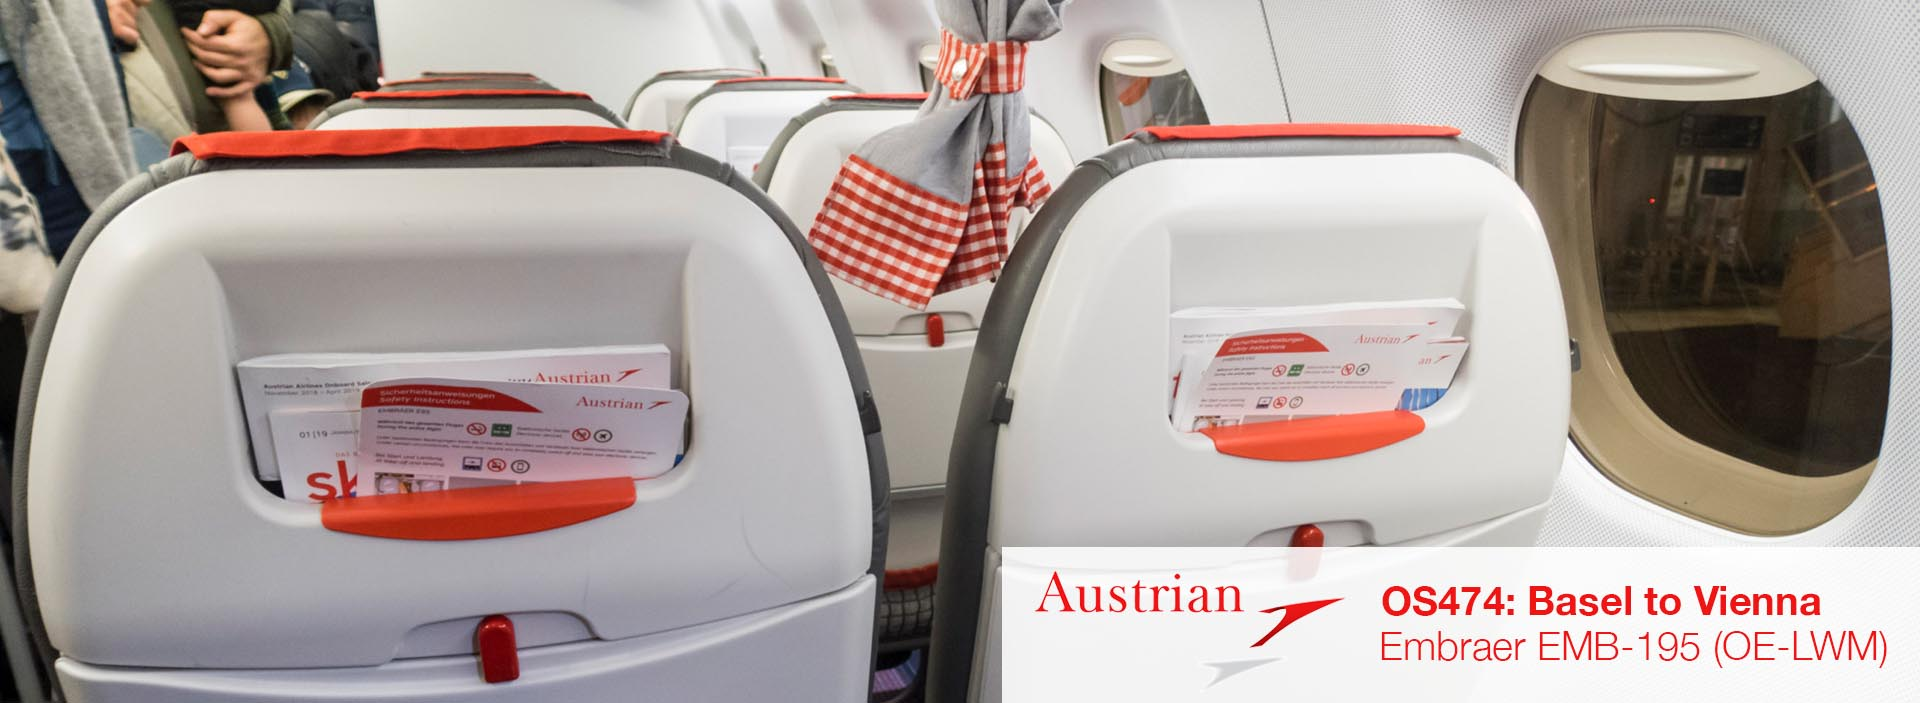 Review: Austrian Airlines EMB-195 Economy Class from Basel to Vienna